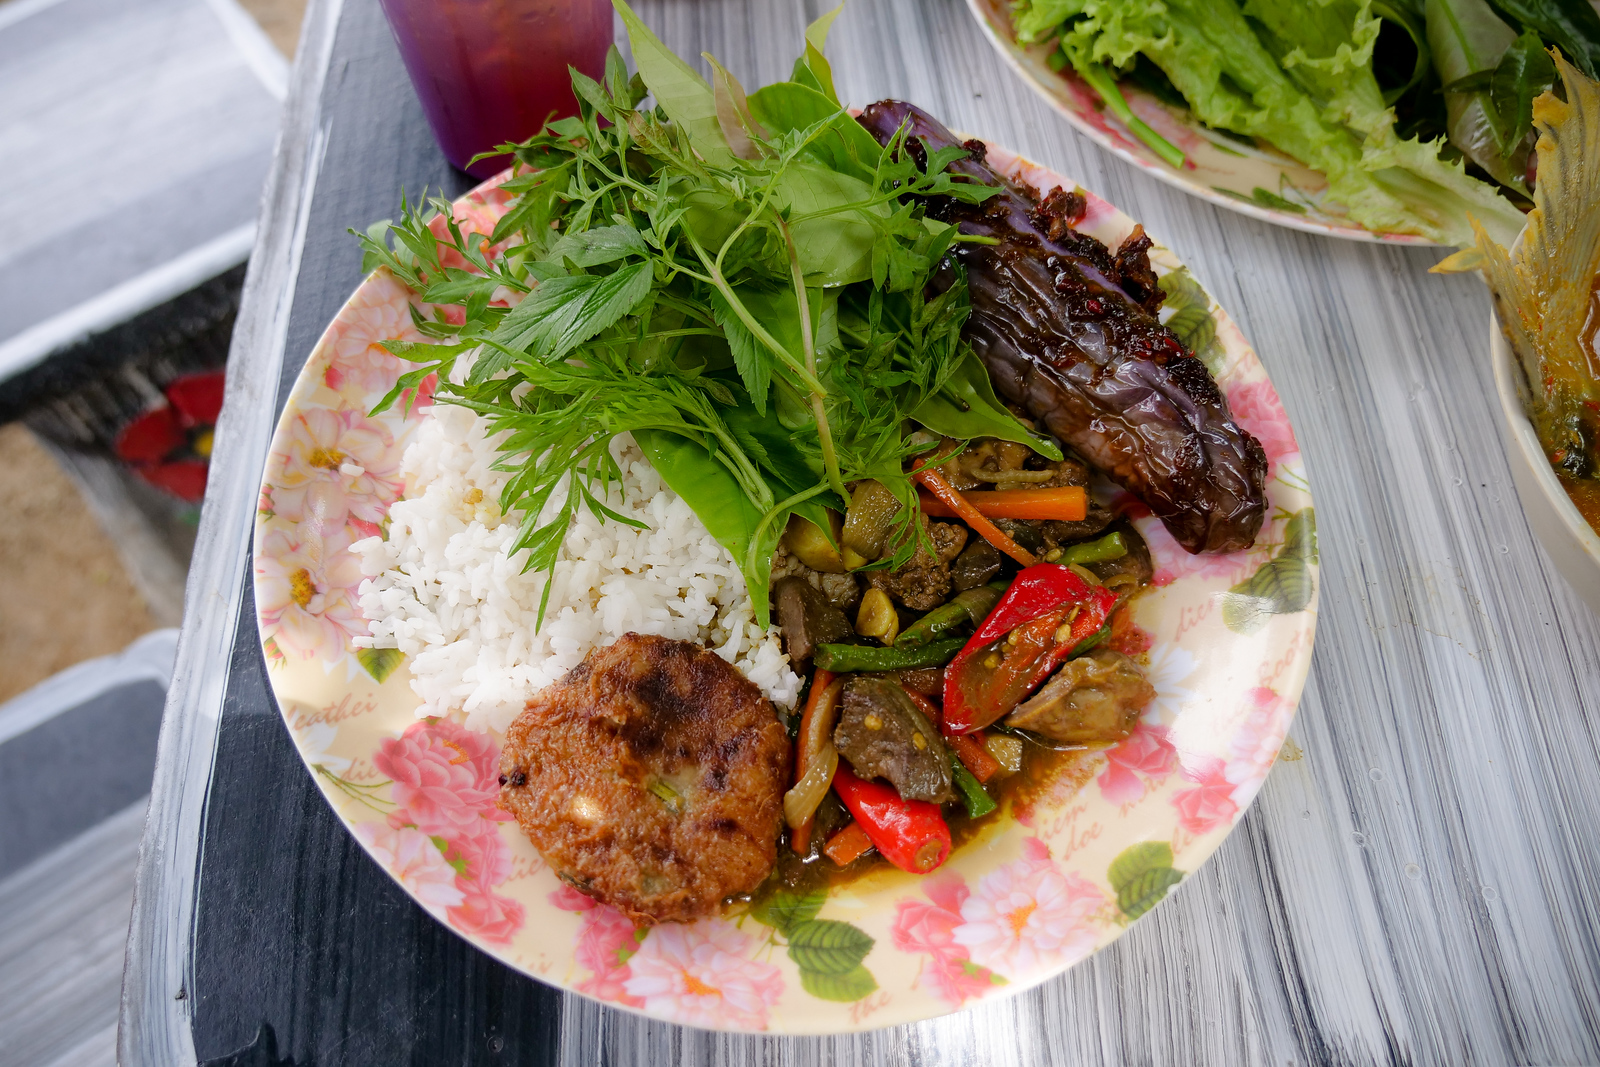 Amazing flavor combinations possible in this perfect example of home-style Malay food